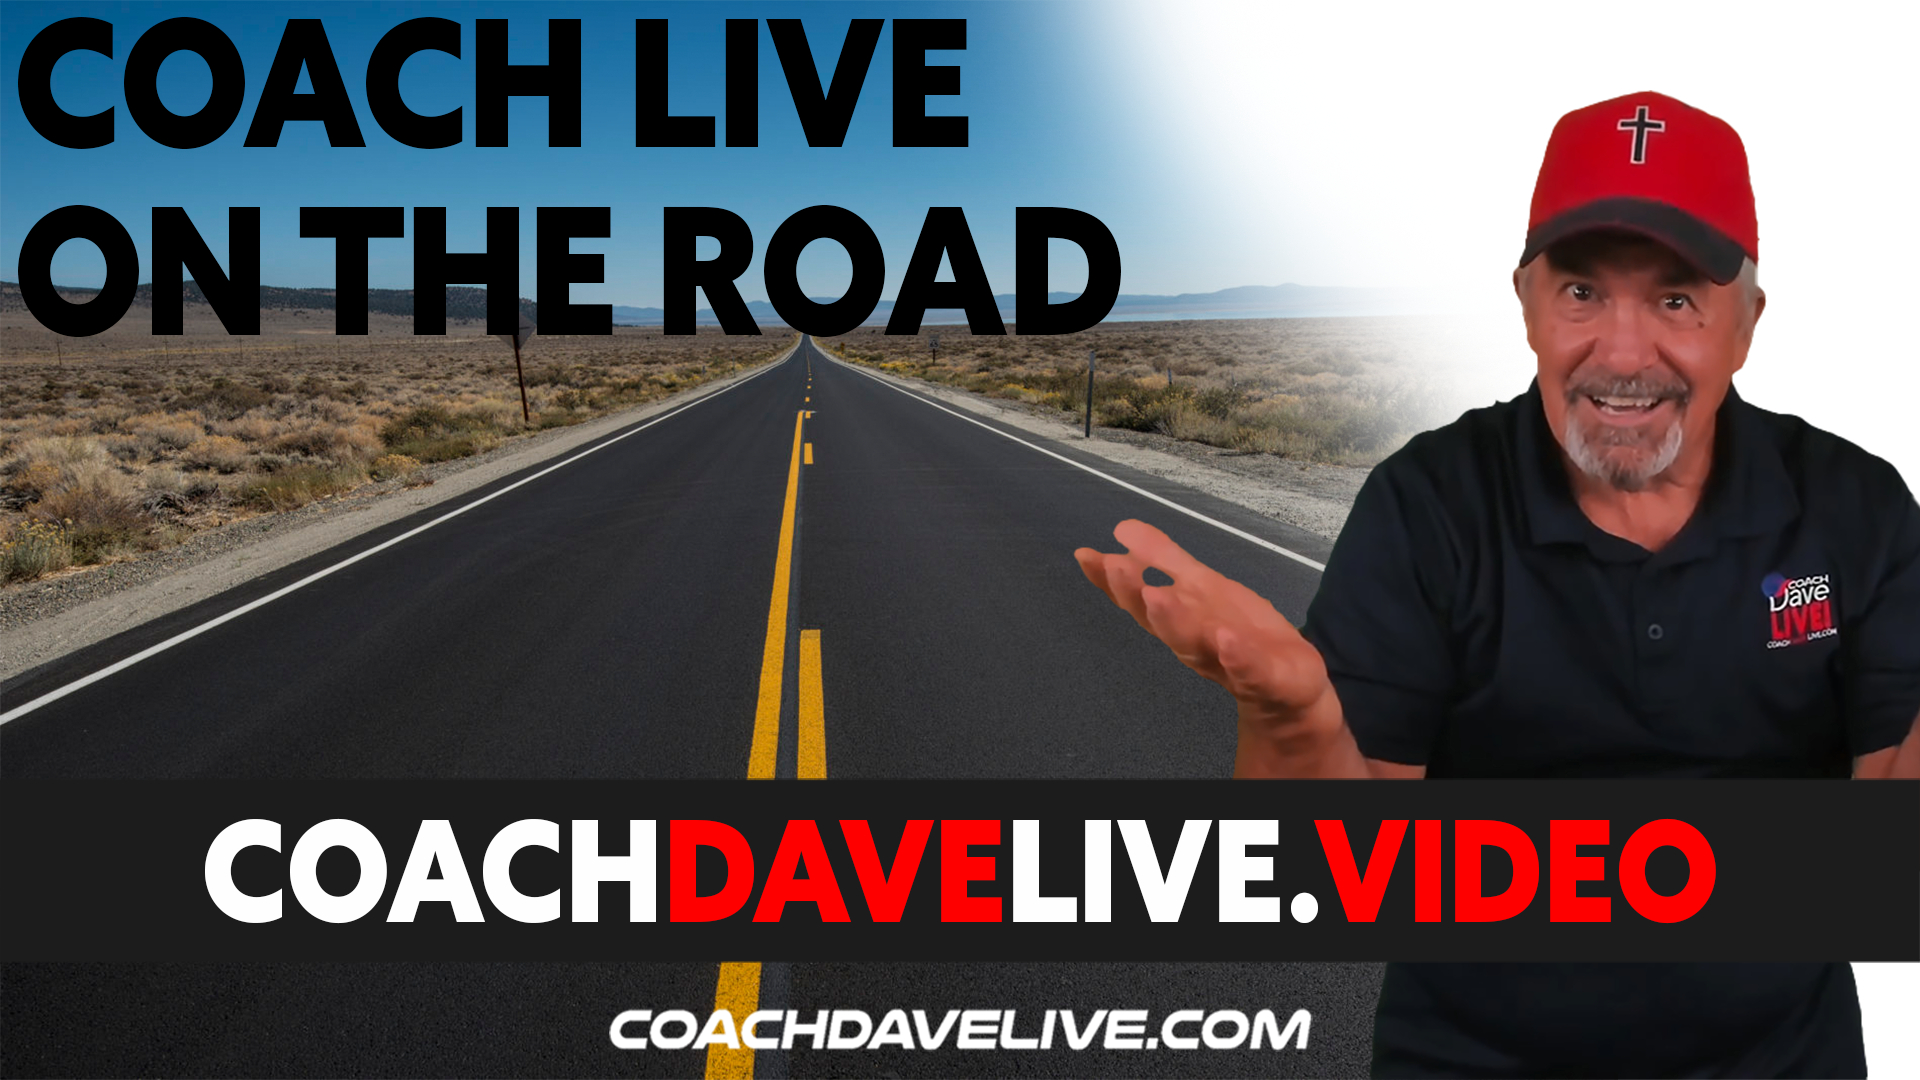 Coach Dave LIVE   9-2-2021   COACH LIVE ON THE ROAD